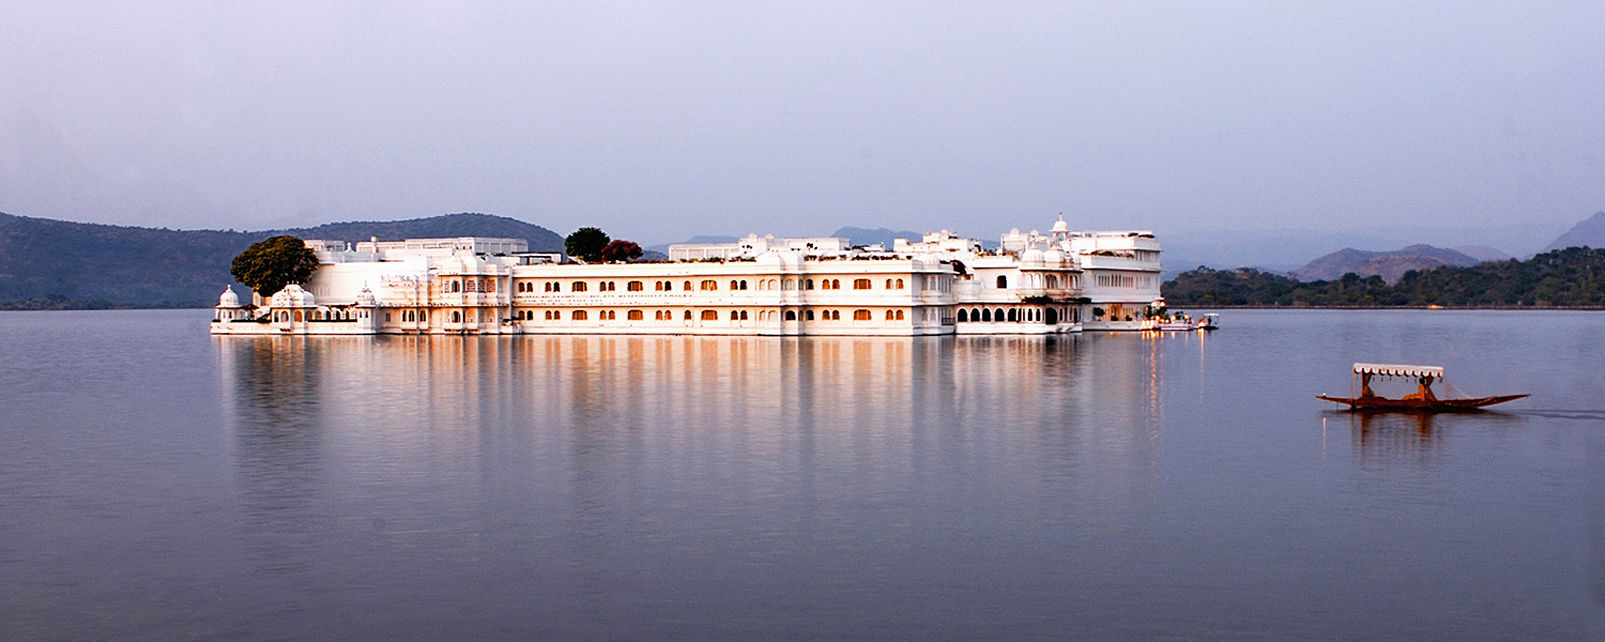 Hôtel Lake Palace